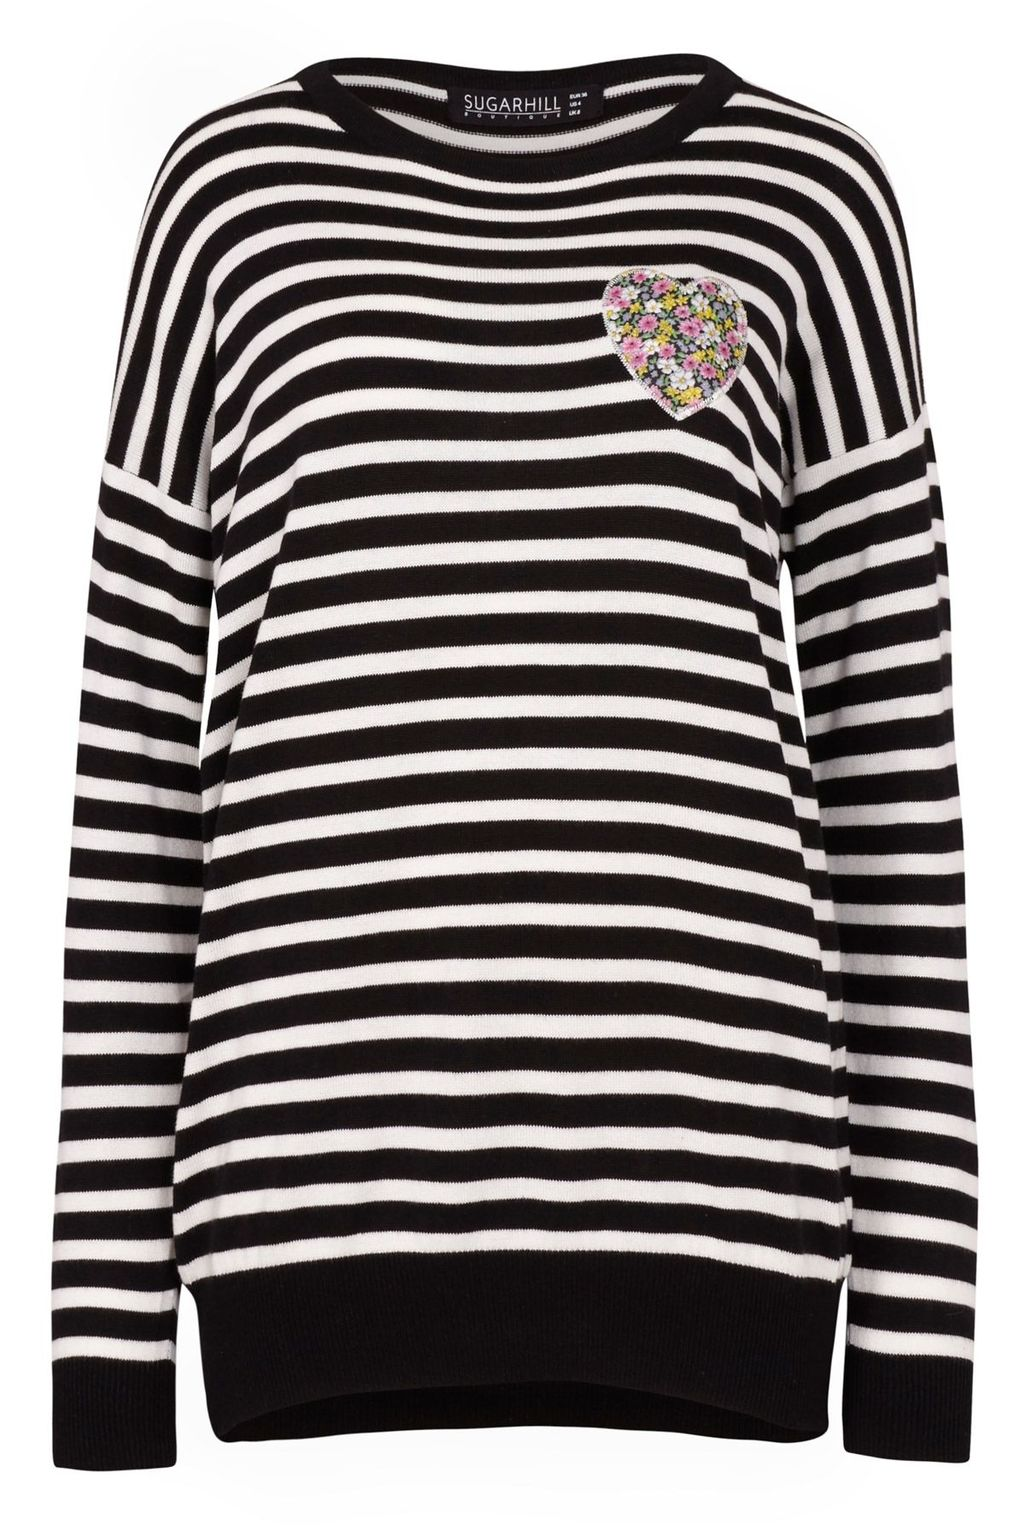 Gertrud Heart Stripe Applique Sweater, Black/White - neckline: round neck; sleeve style: raglan; pattern: horizontal stripes; length: below the bottom; style: standard; secondary colour: white; predominant colour: black; occasions: casual; fit: standard fit; sleeve length: long sleeve; trends: monochrome, graphic stripes; texture group: knits/crochet; pattern type: knitted - fine stitch; pattern size: standard; fibres: viscose/rayon - mix; season: s/s 2016; wardrobe: highlight